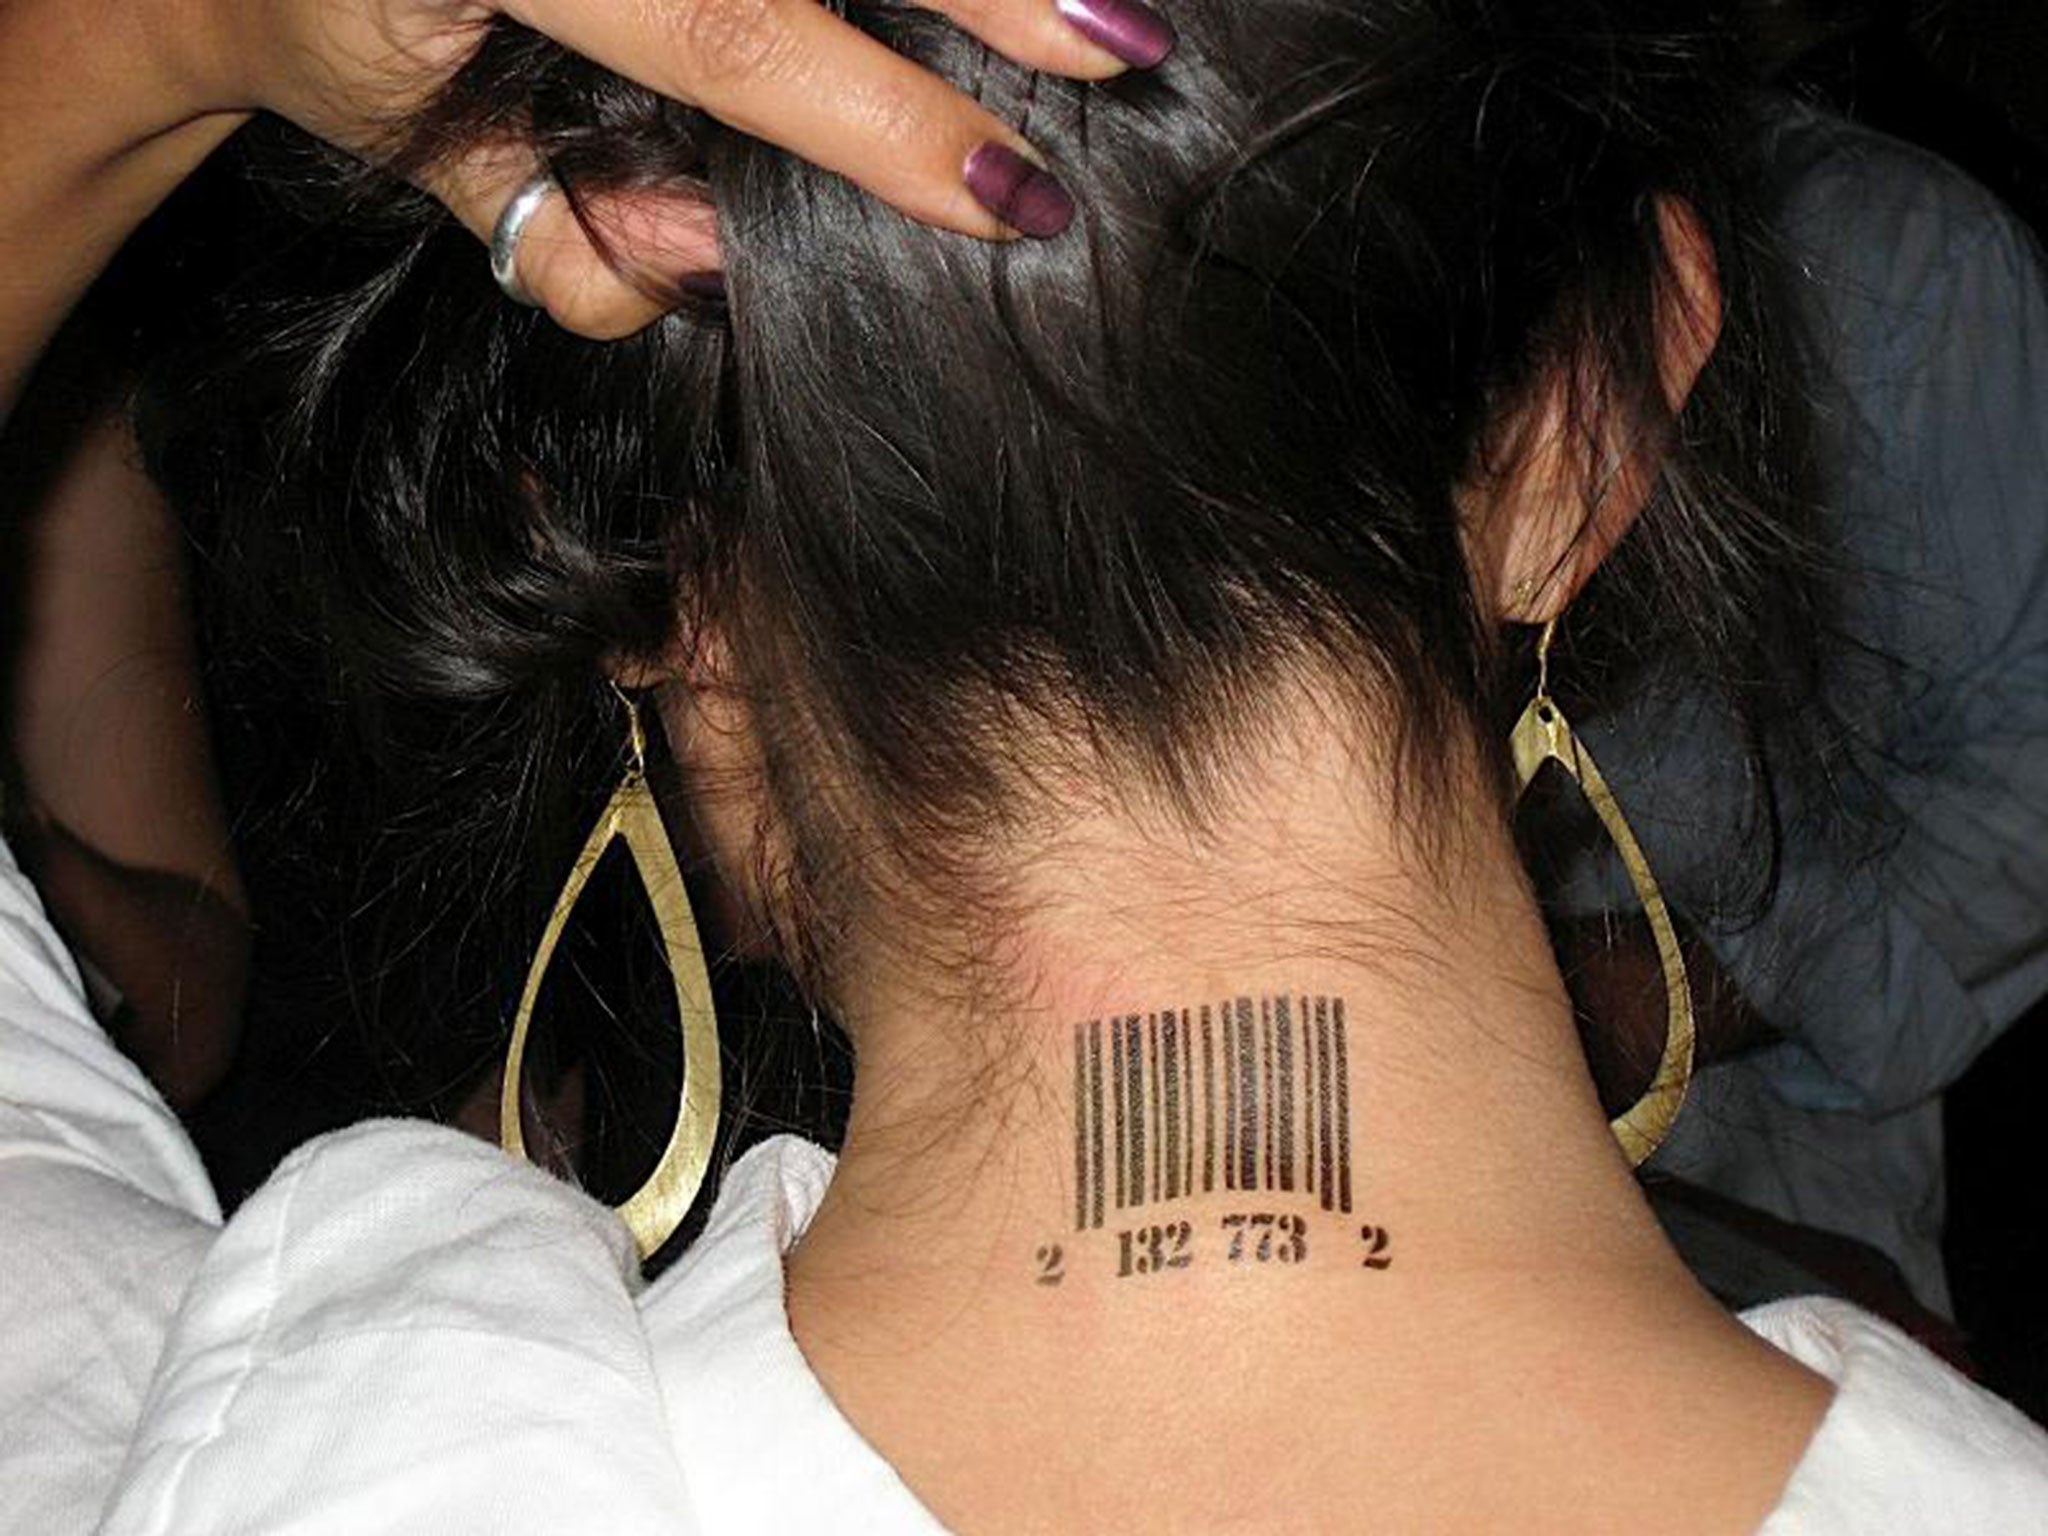 Human traffickers victims branded like cattle the for Pimp branding tattoos